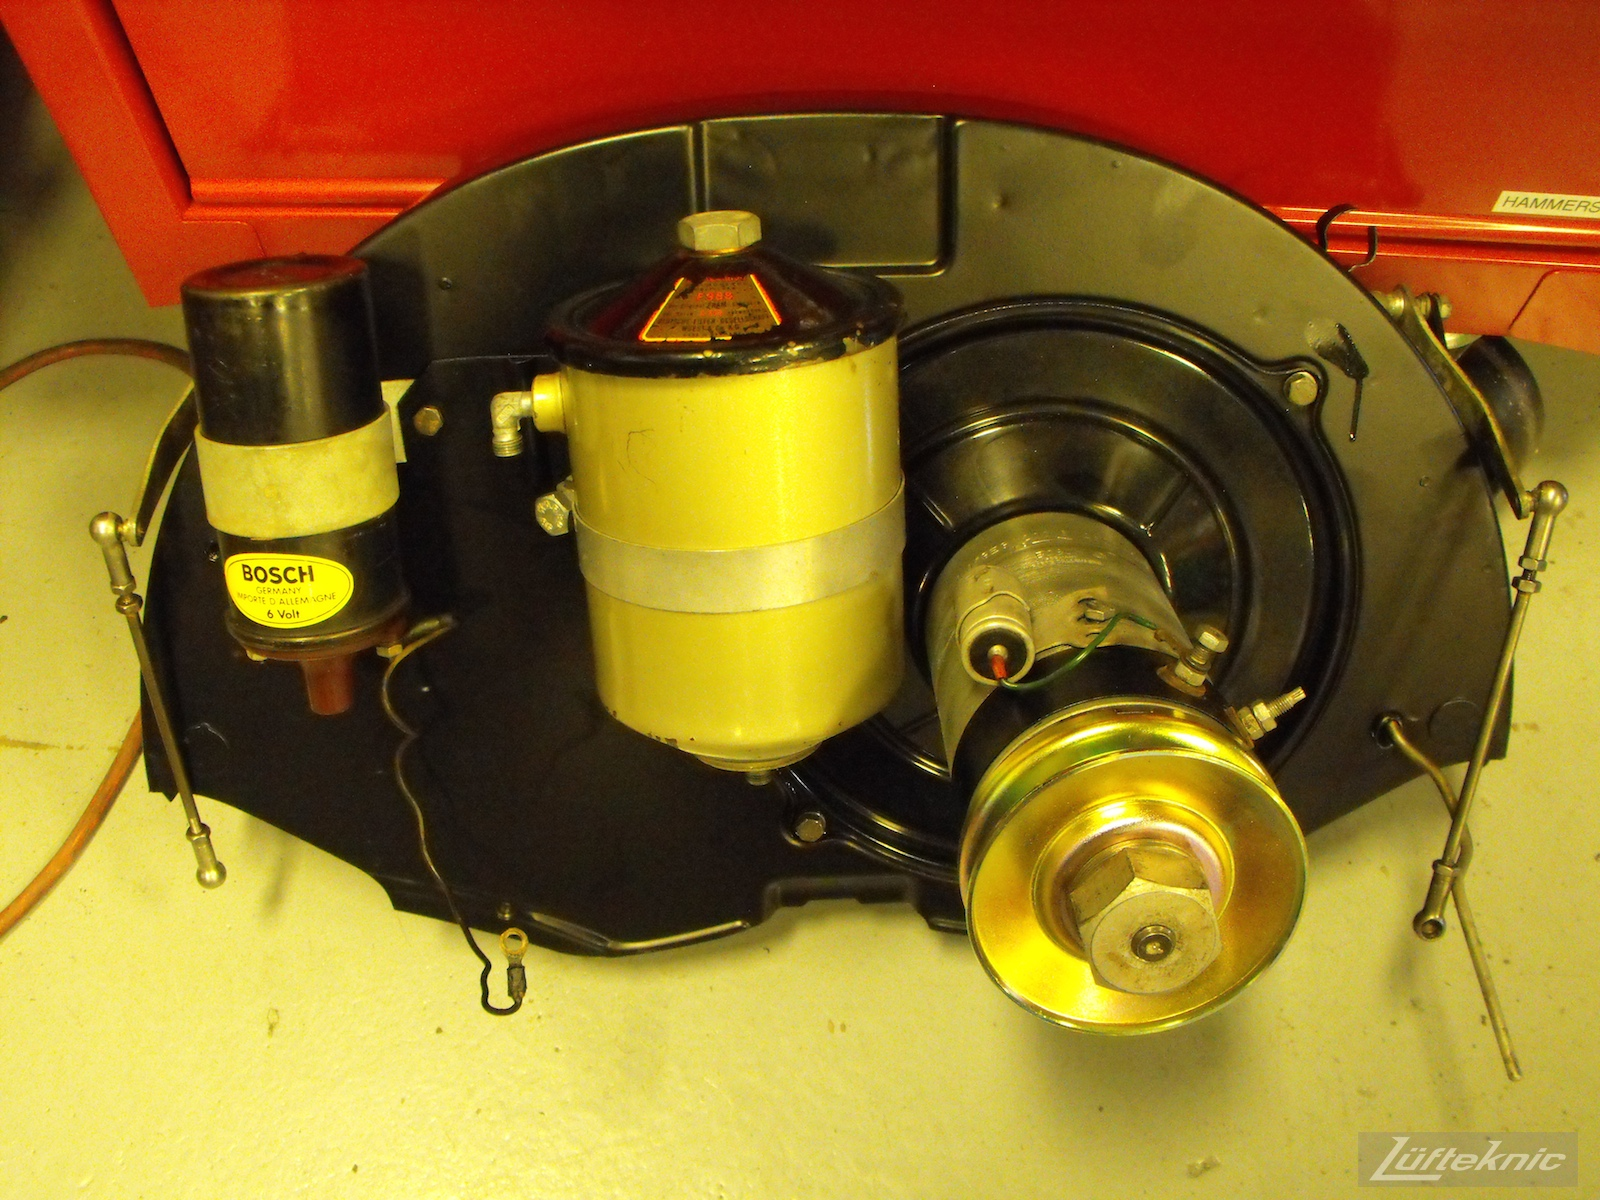 Assembled fan shroud for a 1961 Porsche 356B Roadster restoration.